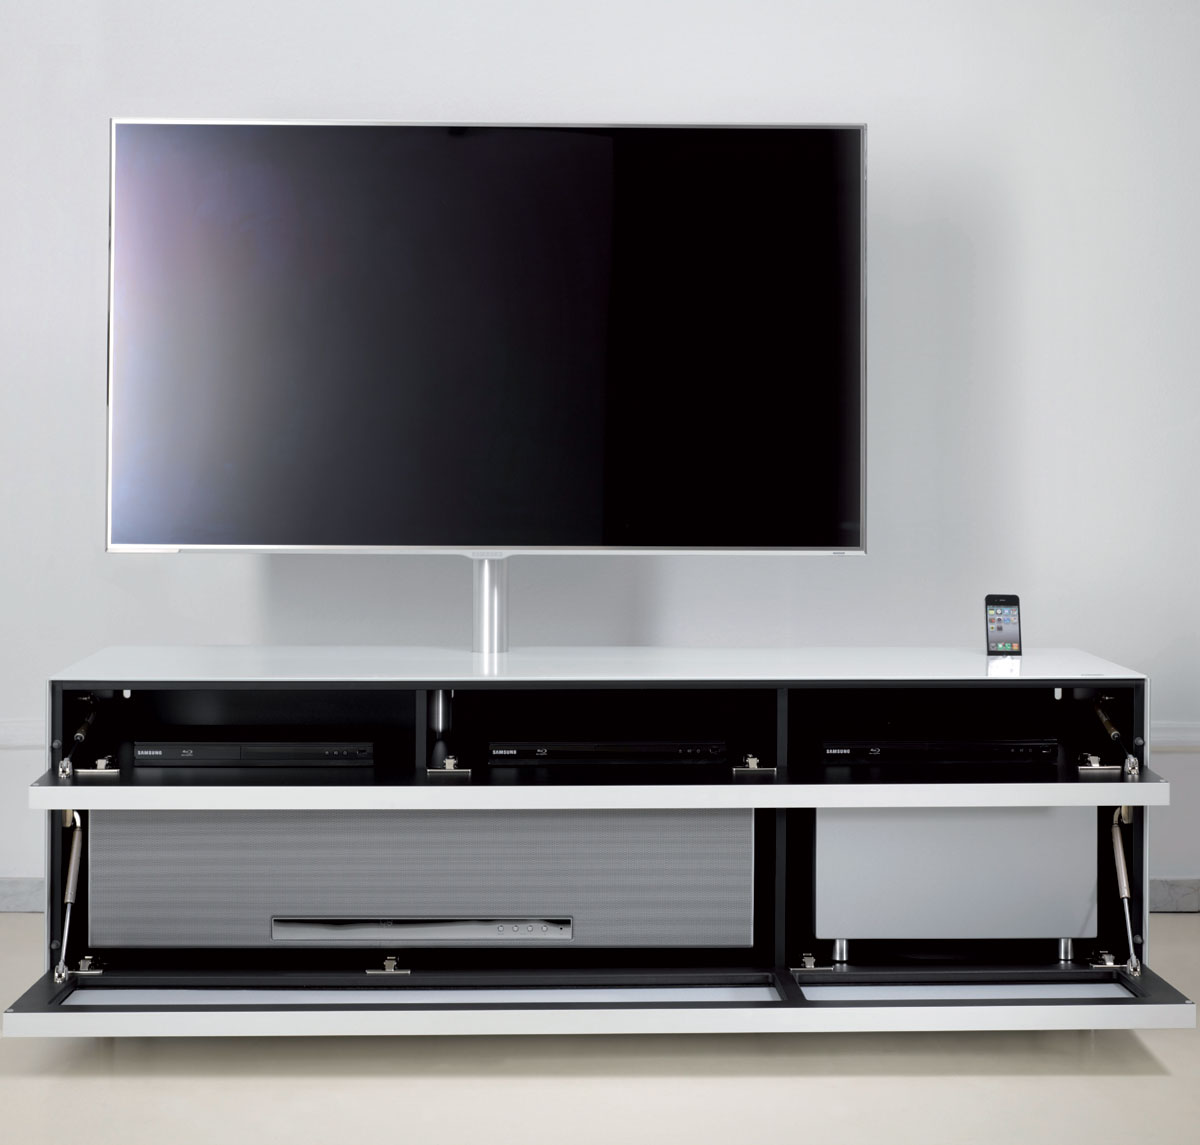 spectral scala archive tv m bel und hifi m bel guide. Black Bedroom Furniture Sets. Home Design Ideas